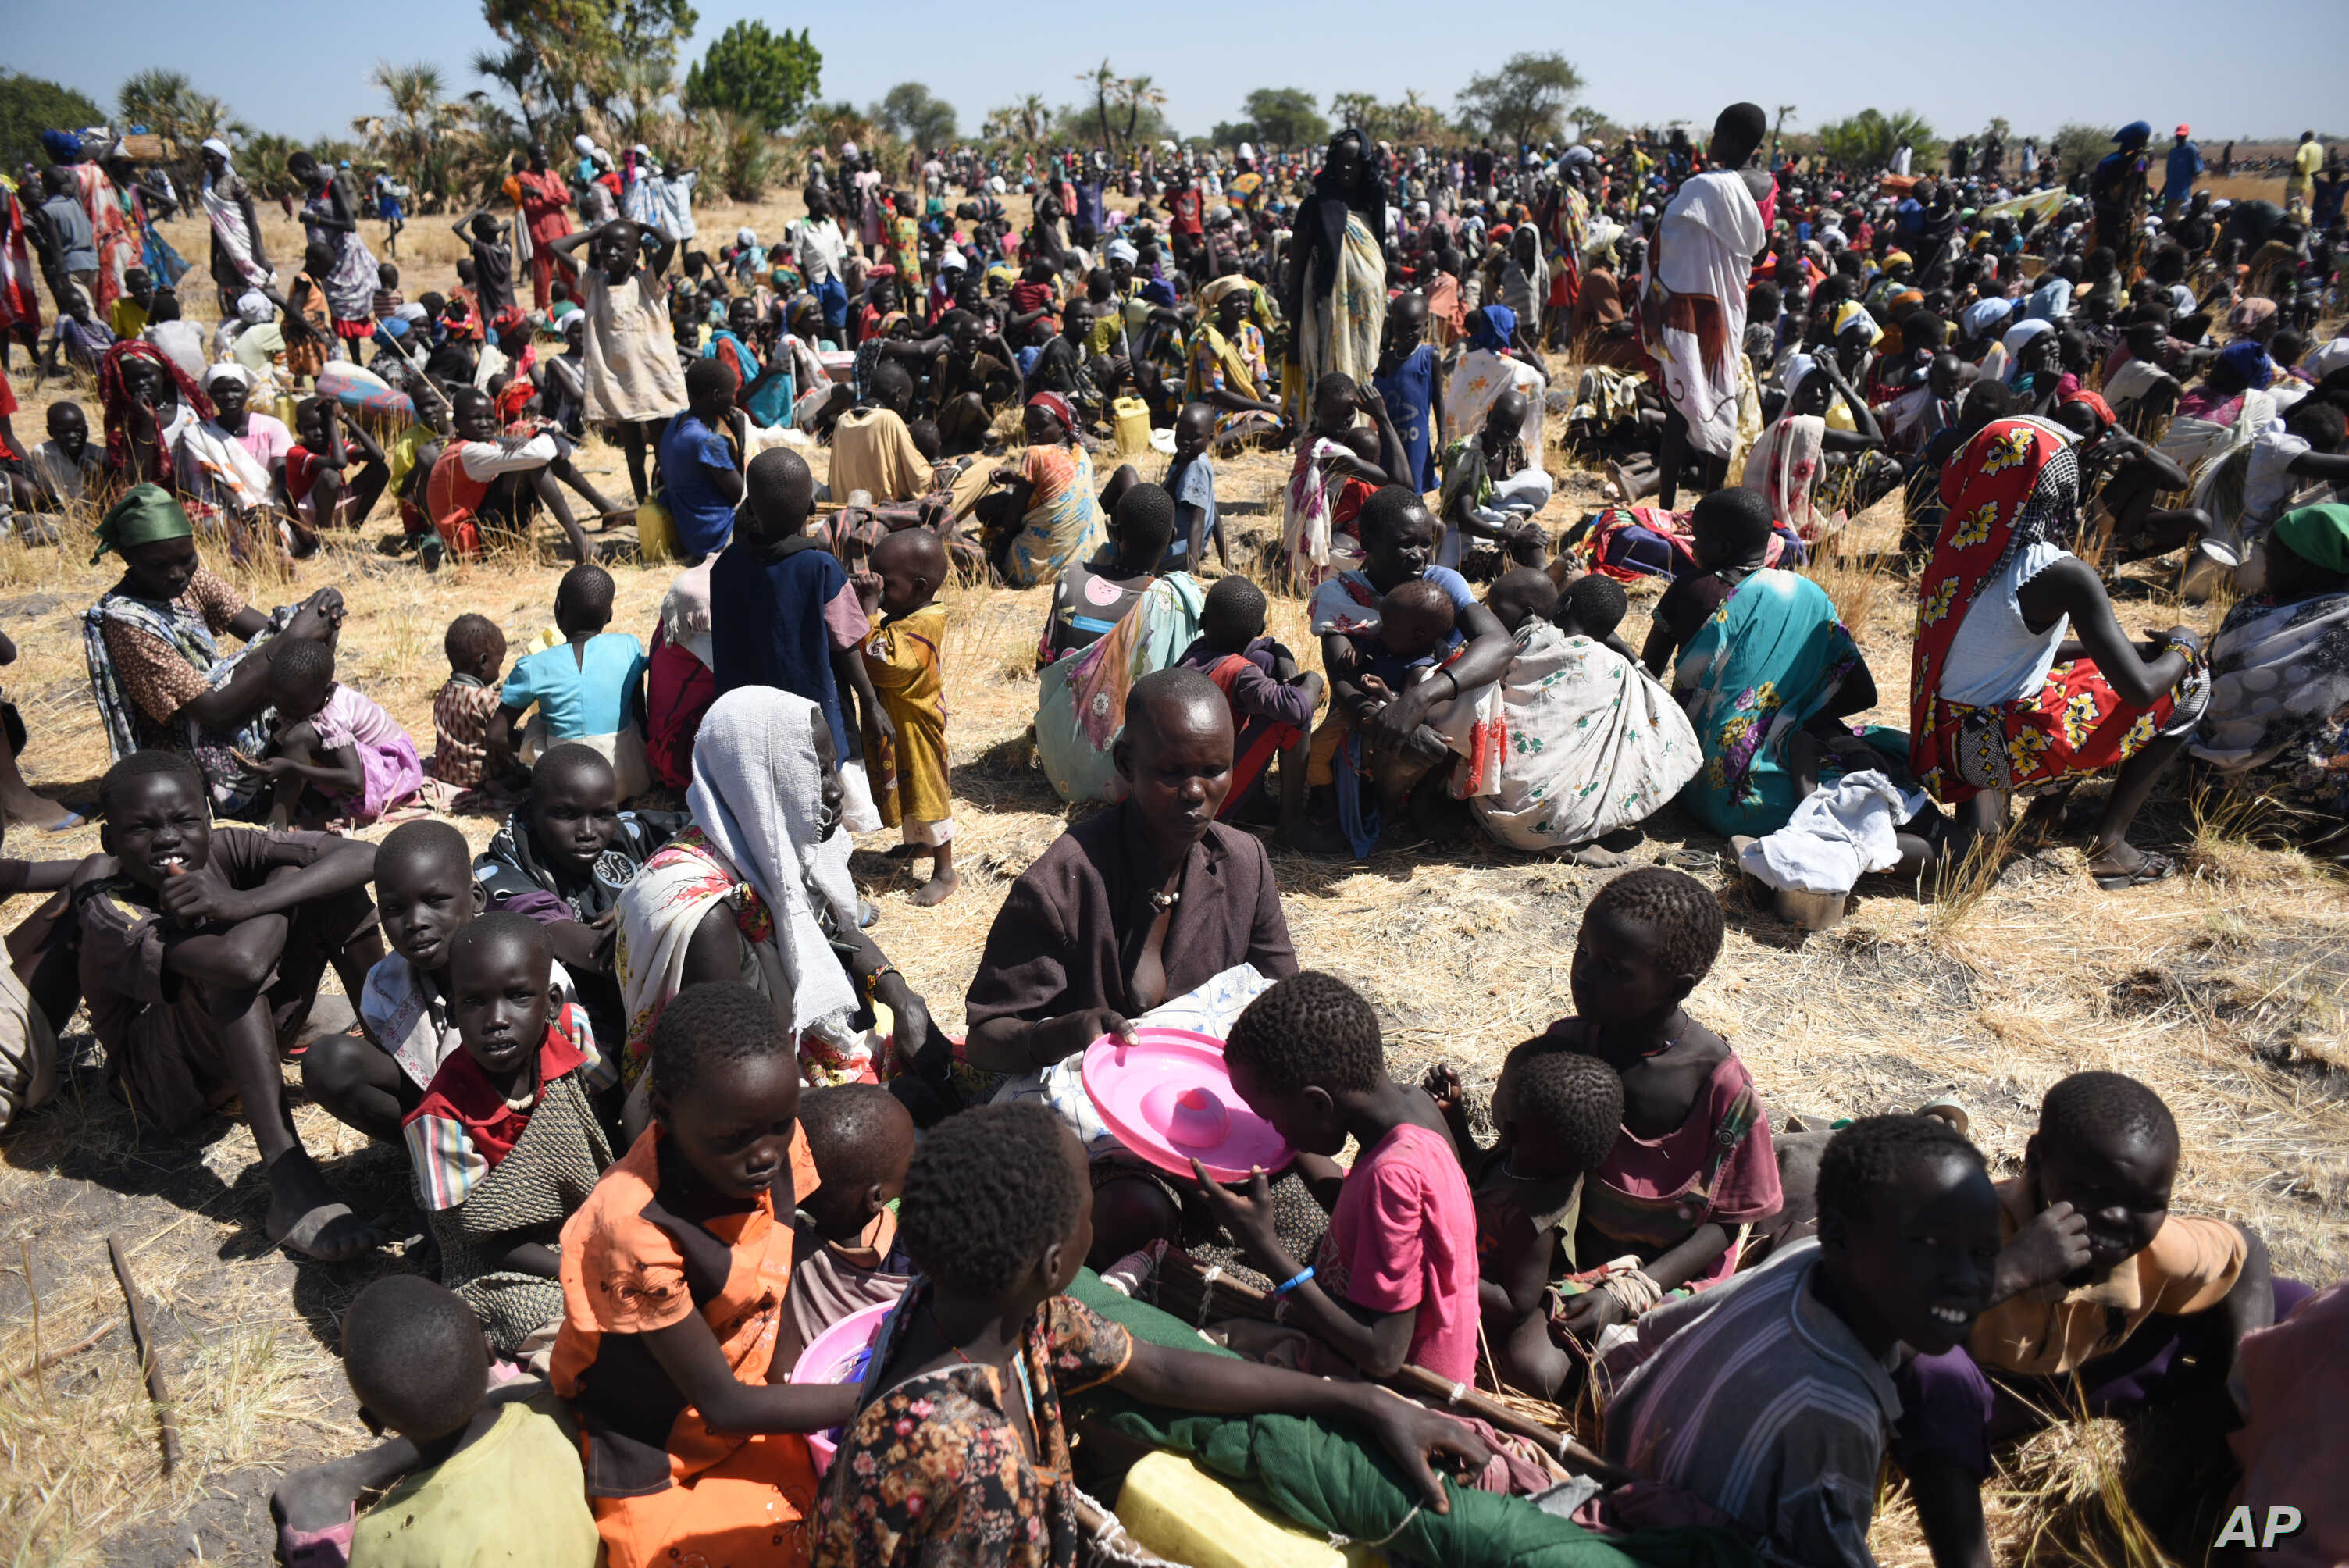 Some of more than 30,000 people who flocked into Leer town, South Sudan, to receive food from the International Committee of the Red Cross, Dec. 15, 2015, which marks the two-year anniversary of South Sudan's civil war.